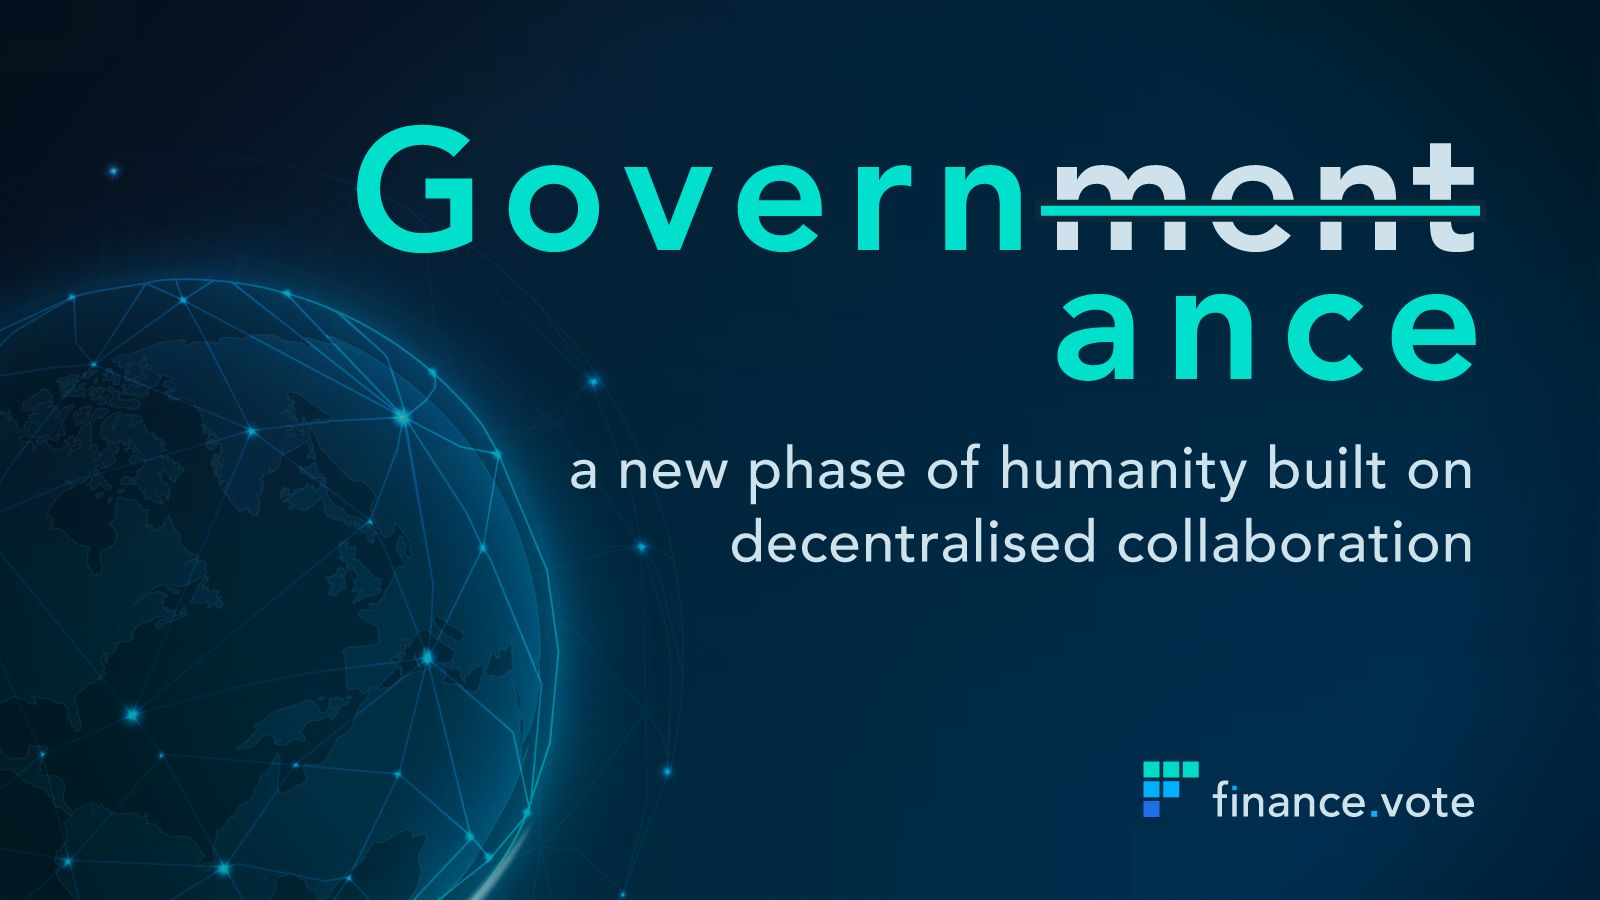 /governance-without-government-jkf35ha feature image